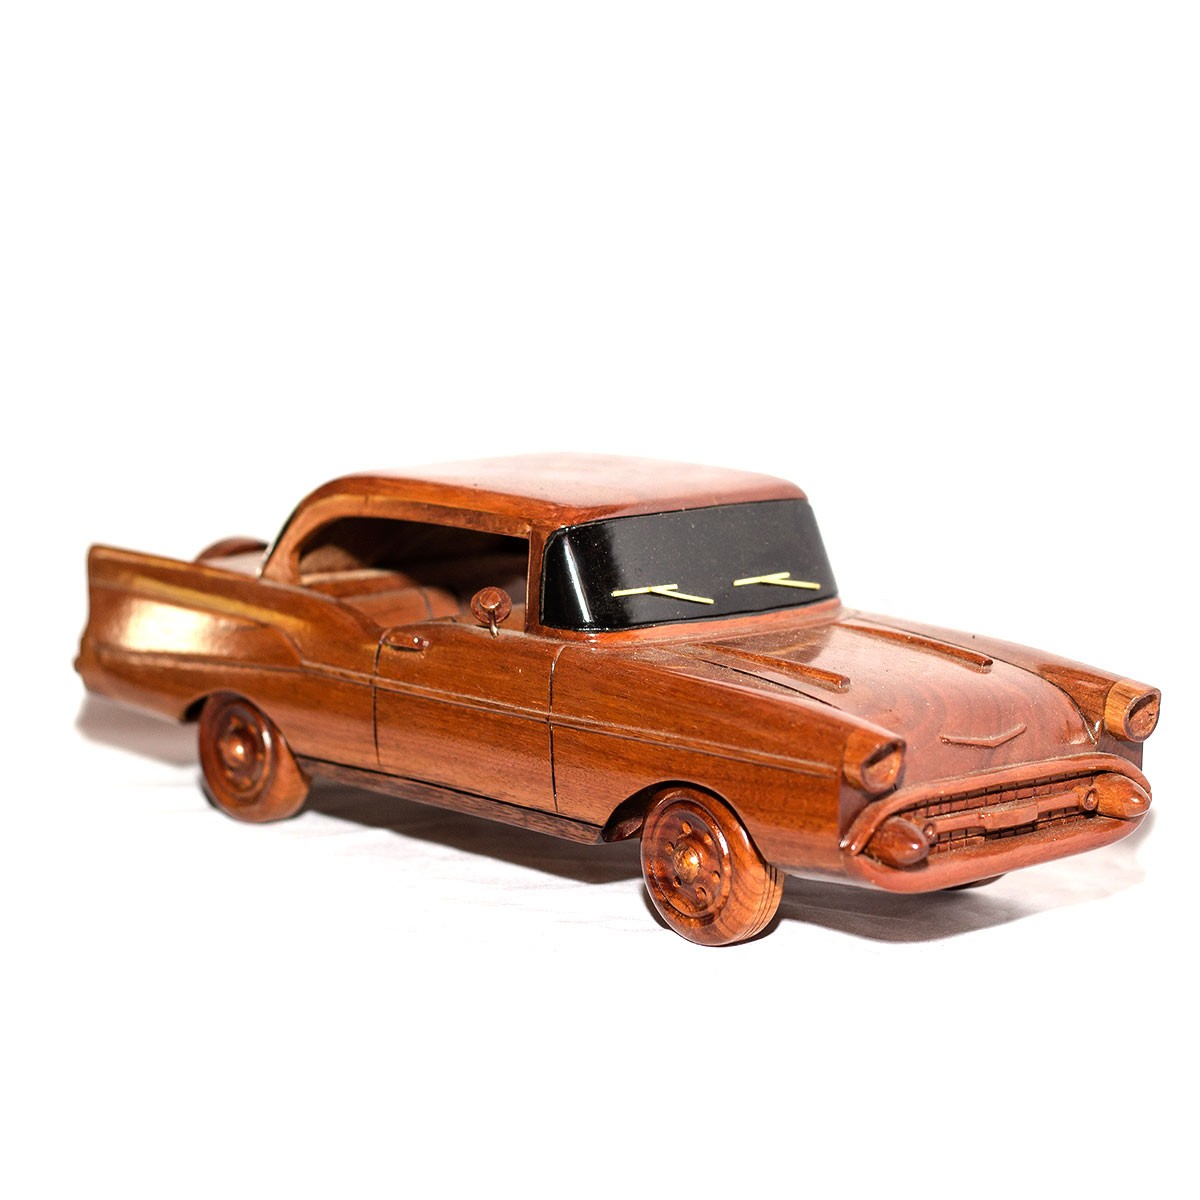 Wooden Car Models | Handmade Mahogany Wood Car Truck model | Cars